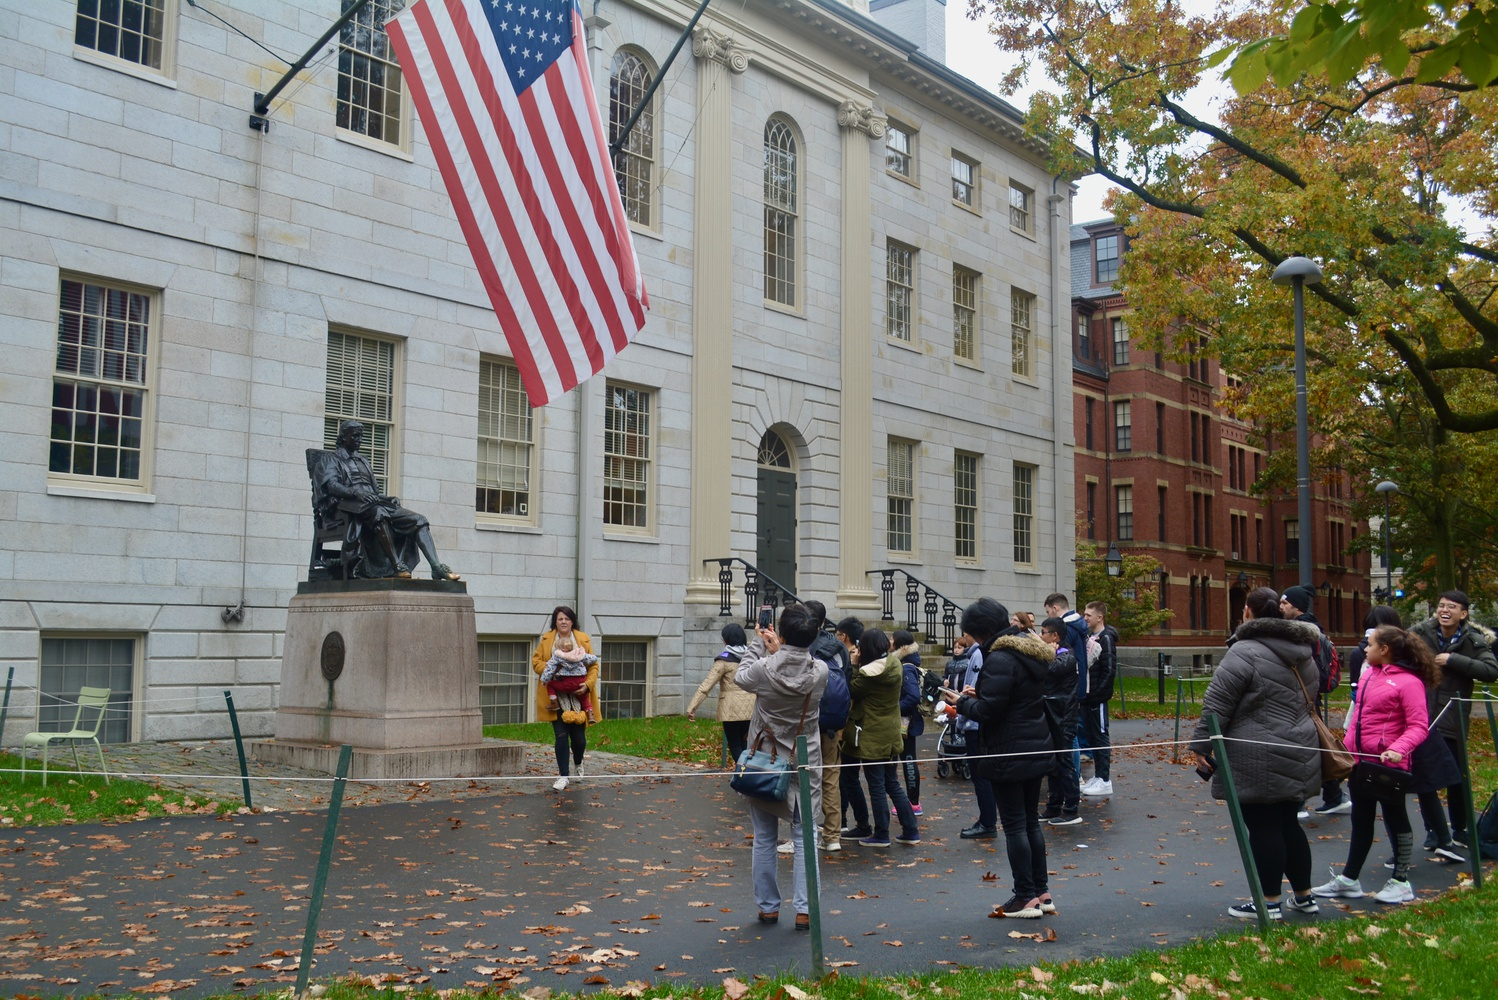 Tourists take photos of the John Harvard statue in front of University Hall.